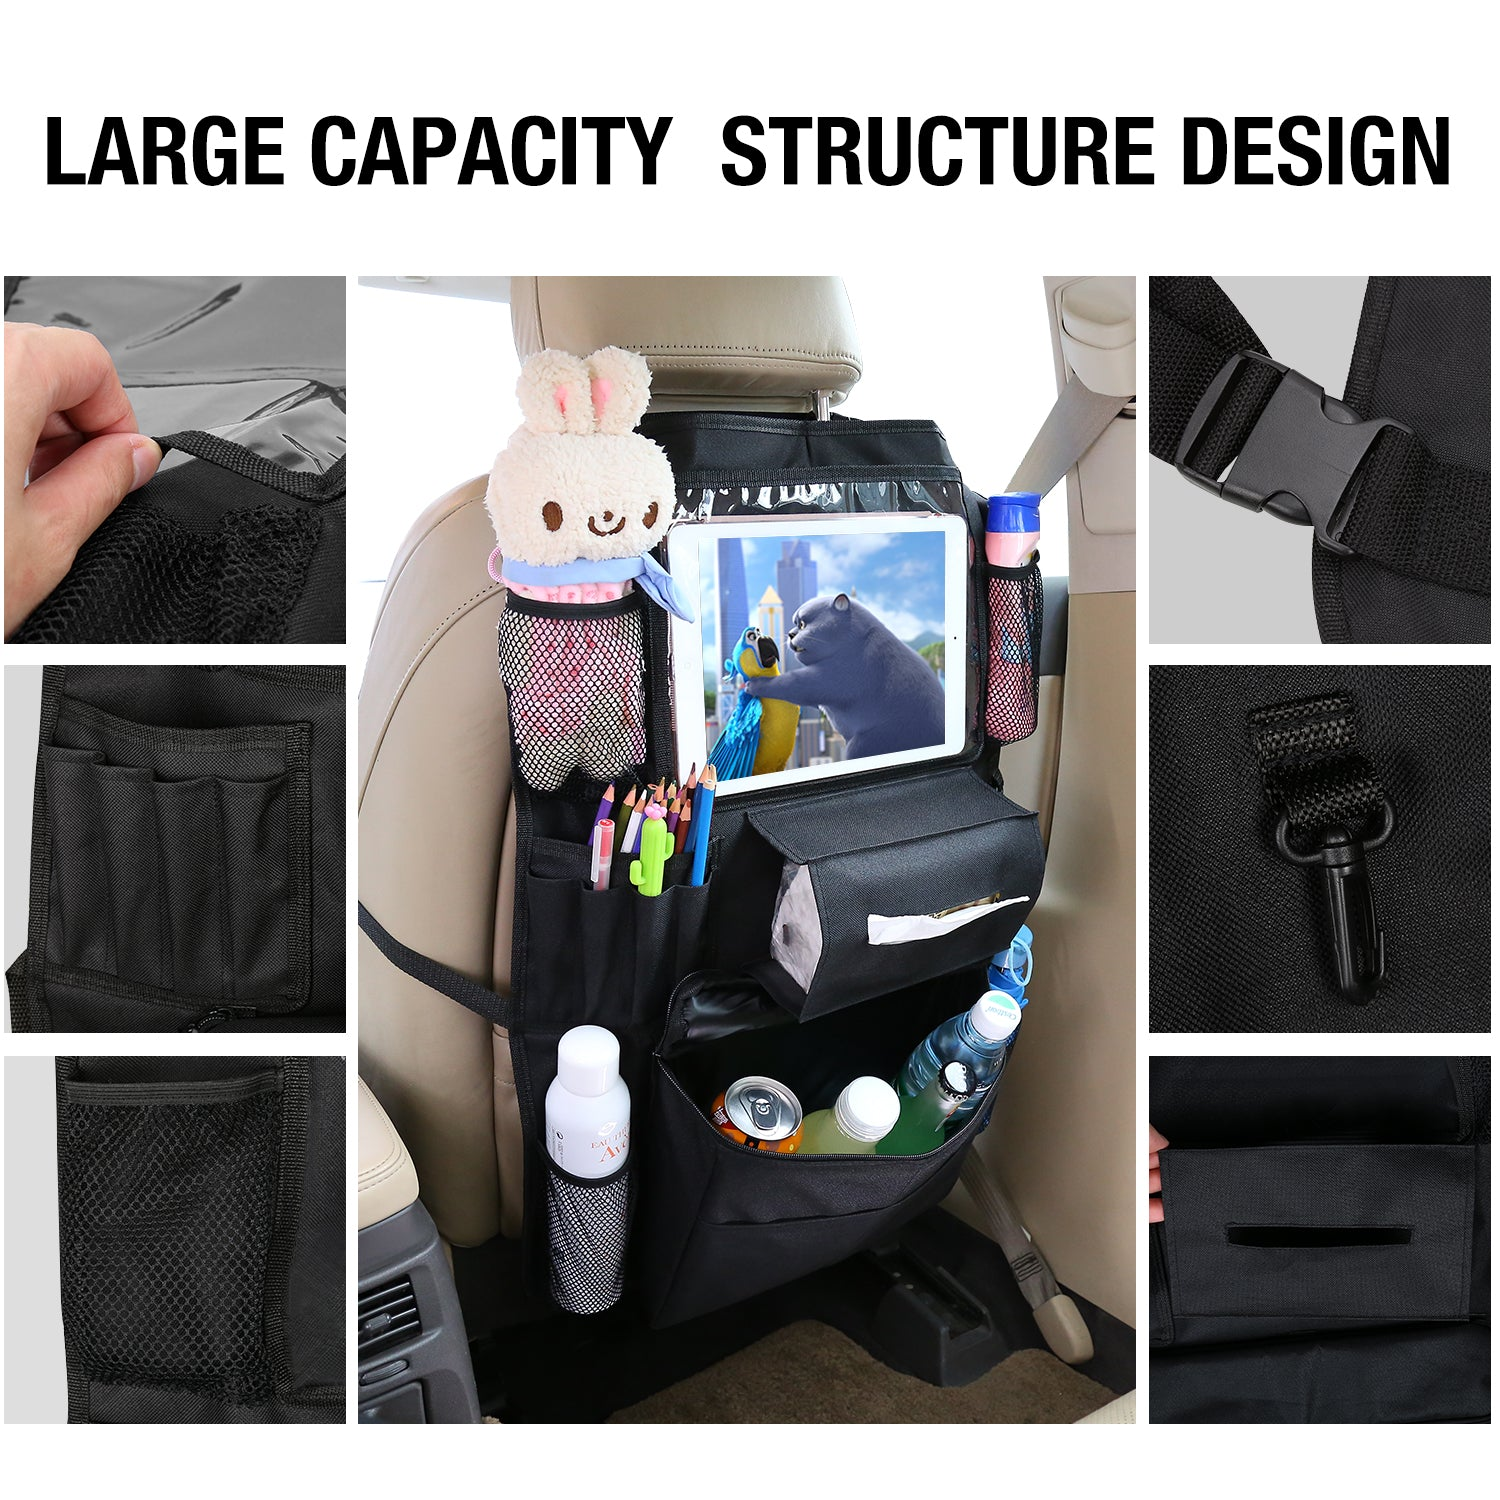 Car Seat Back Organizer with Cooler Bag, Car Back of Seat Storage Organizer Protector Pocket with Delicated Tablet Holder and Cup Holder, 2 Pcs Hangers Included